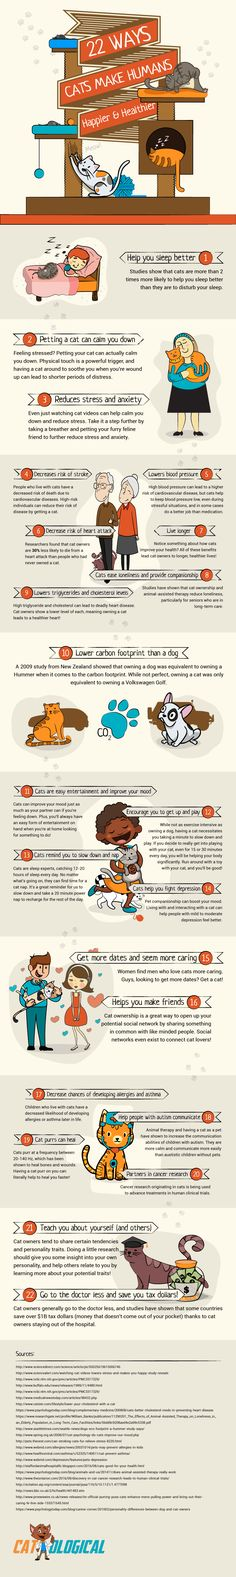 Interesting Animal Facts That Will Blow Your Mind Infographic - 22 interesting facts that will blow your mind